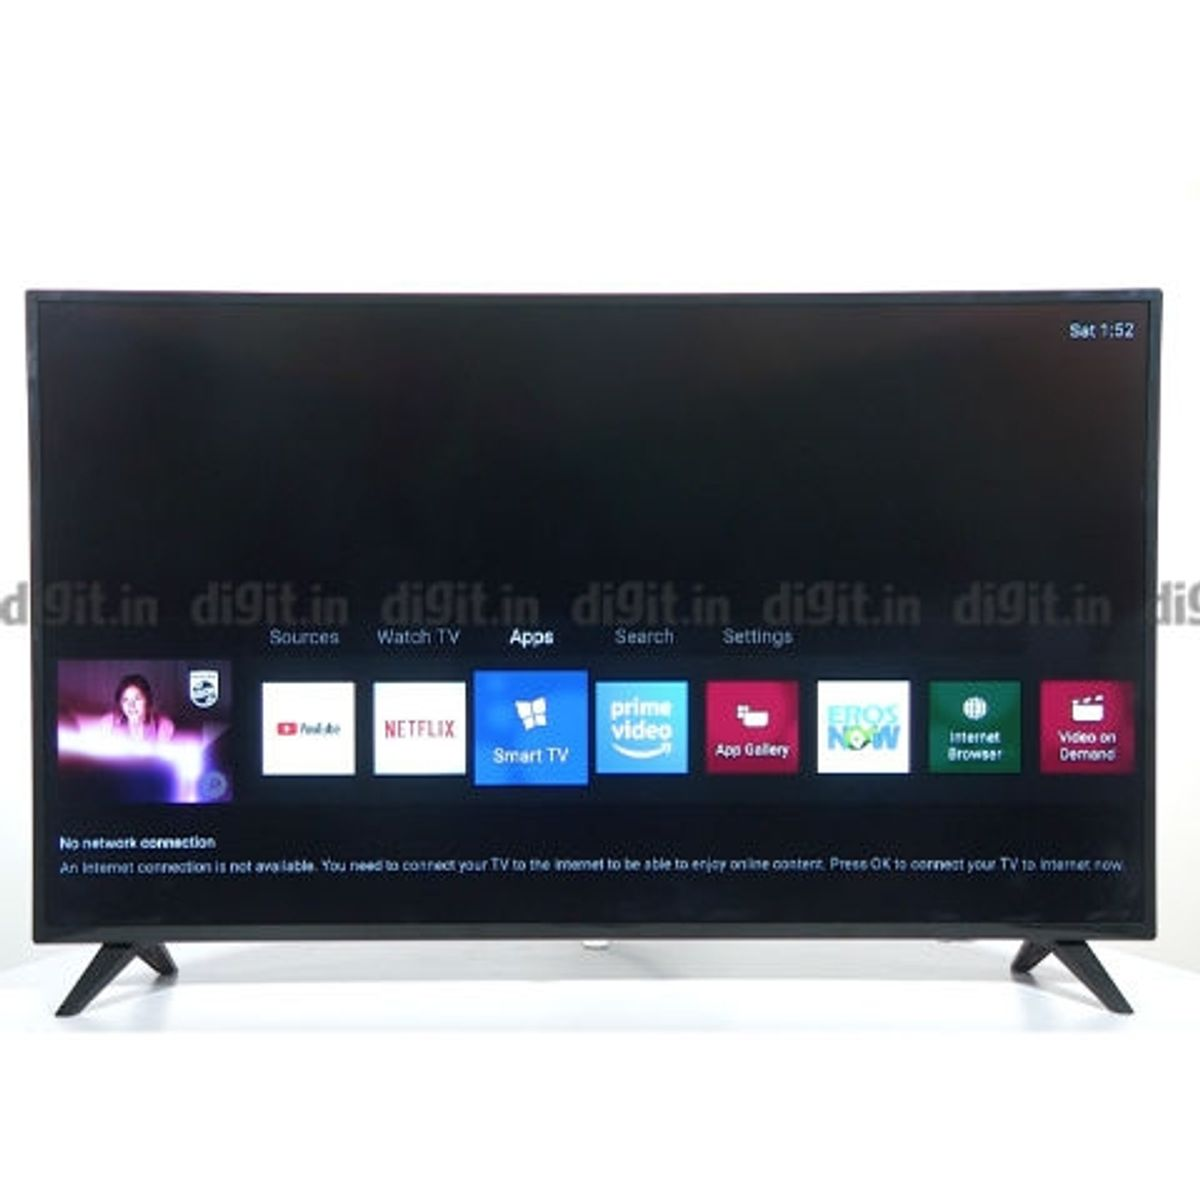 Philips 55 inches 4K Ultra Slim Smart LED TV Review